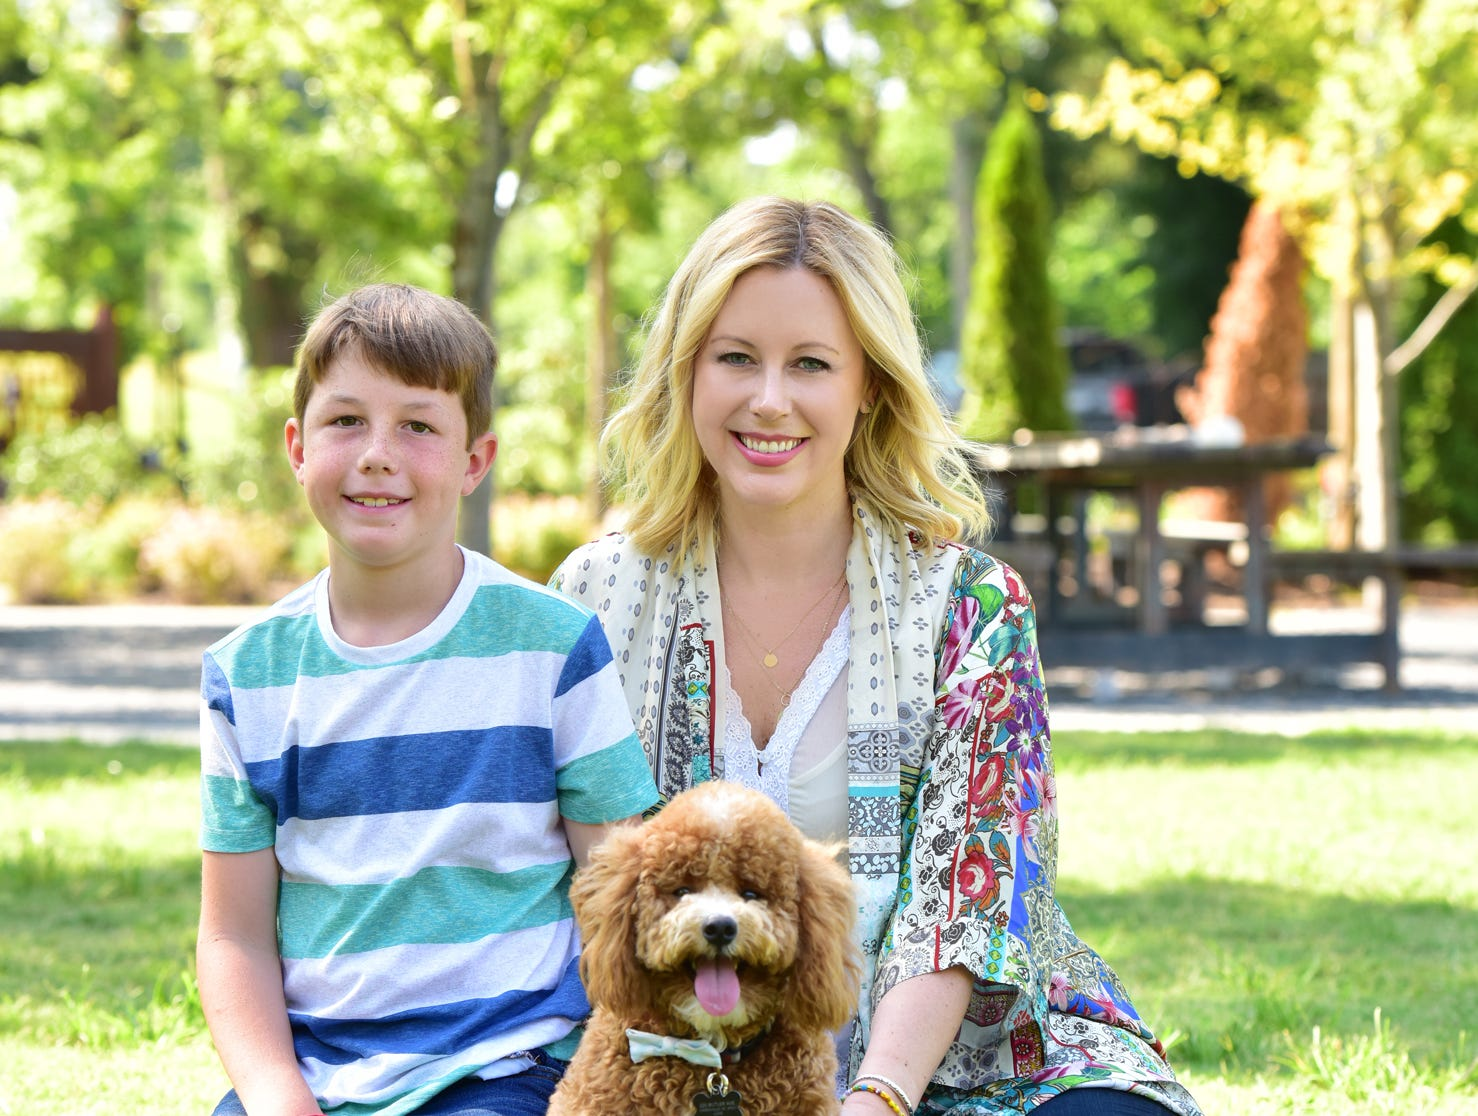 Jen Boshe, right, her son Caelan and their dog Bodhi.